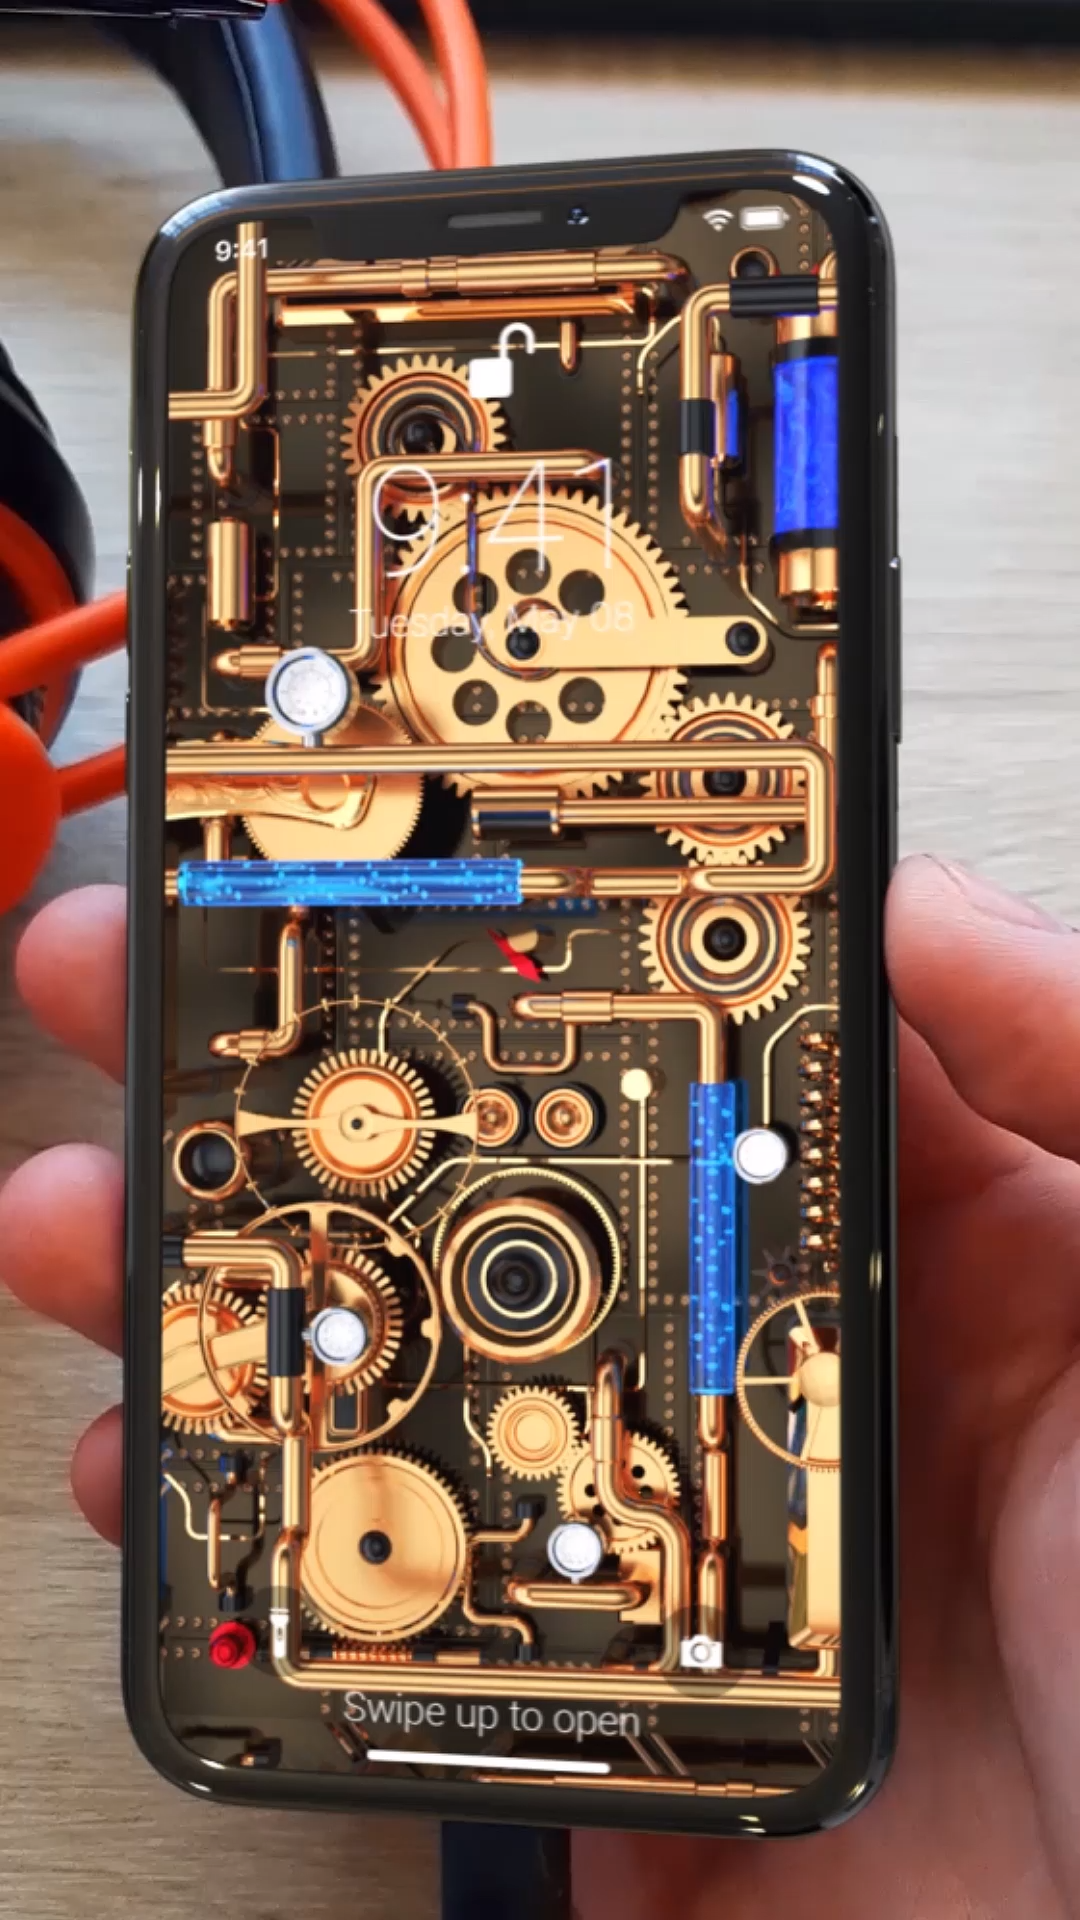 Steam Punk Live Wallpaper for iPhone